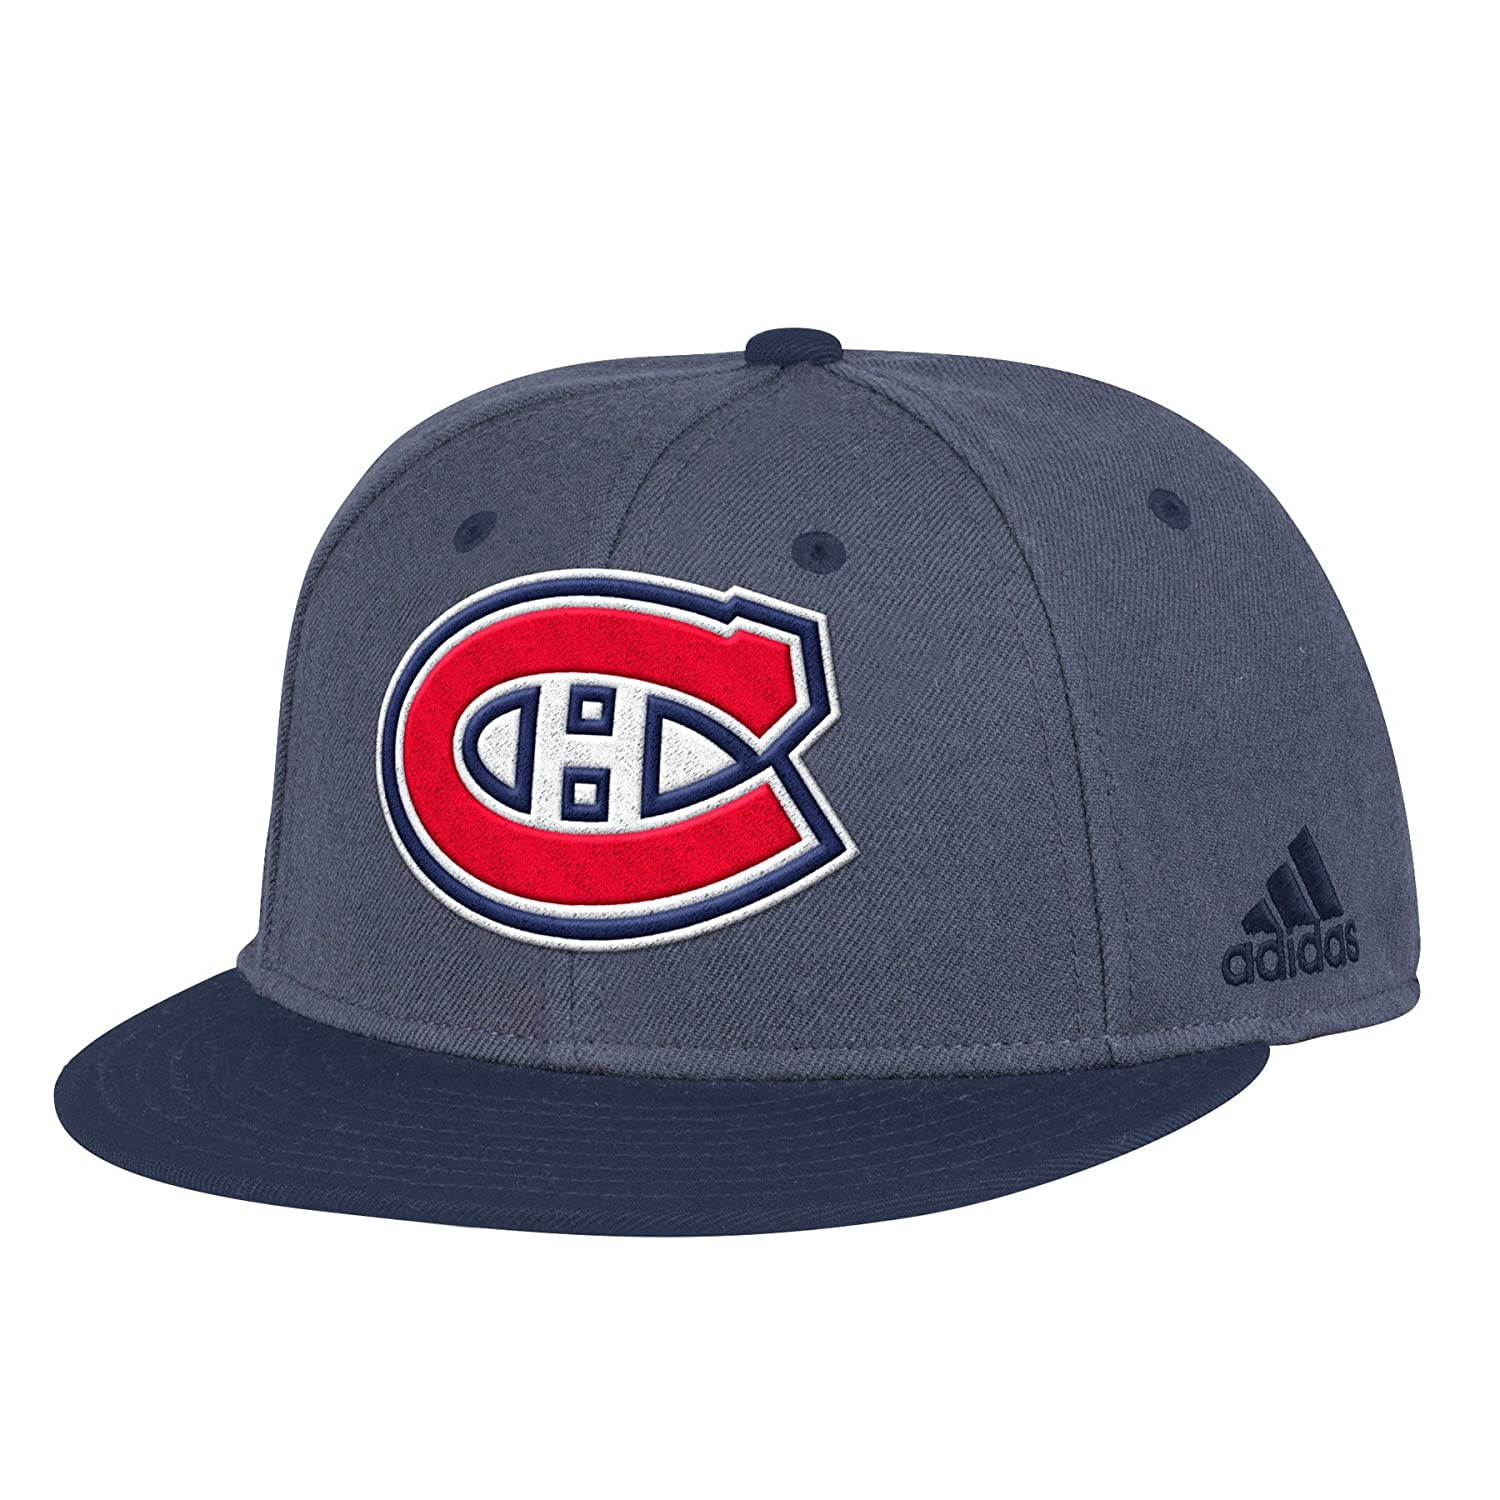 adidas Unisex NHL Montreal Canadiens Two Tone Fitted Cap e803aa0a8846